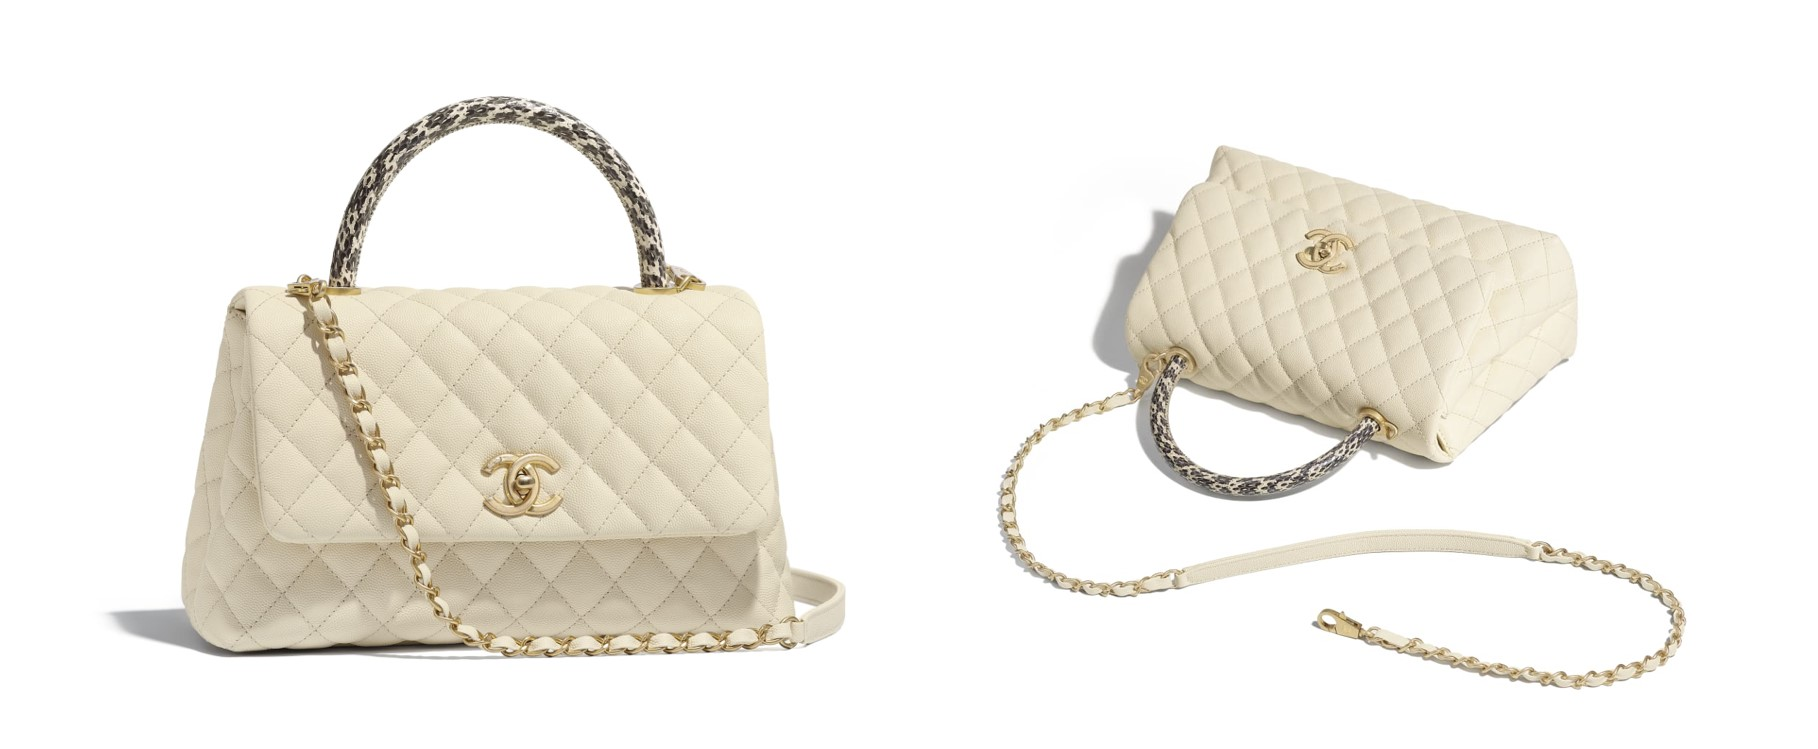 10 Best Chanel bags to buy this season creme flap Chanel top handle flap bag